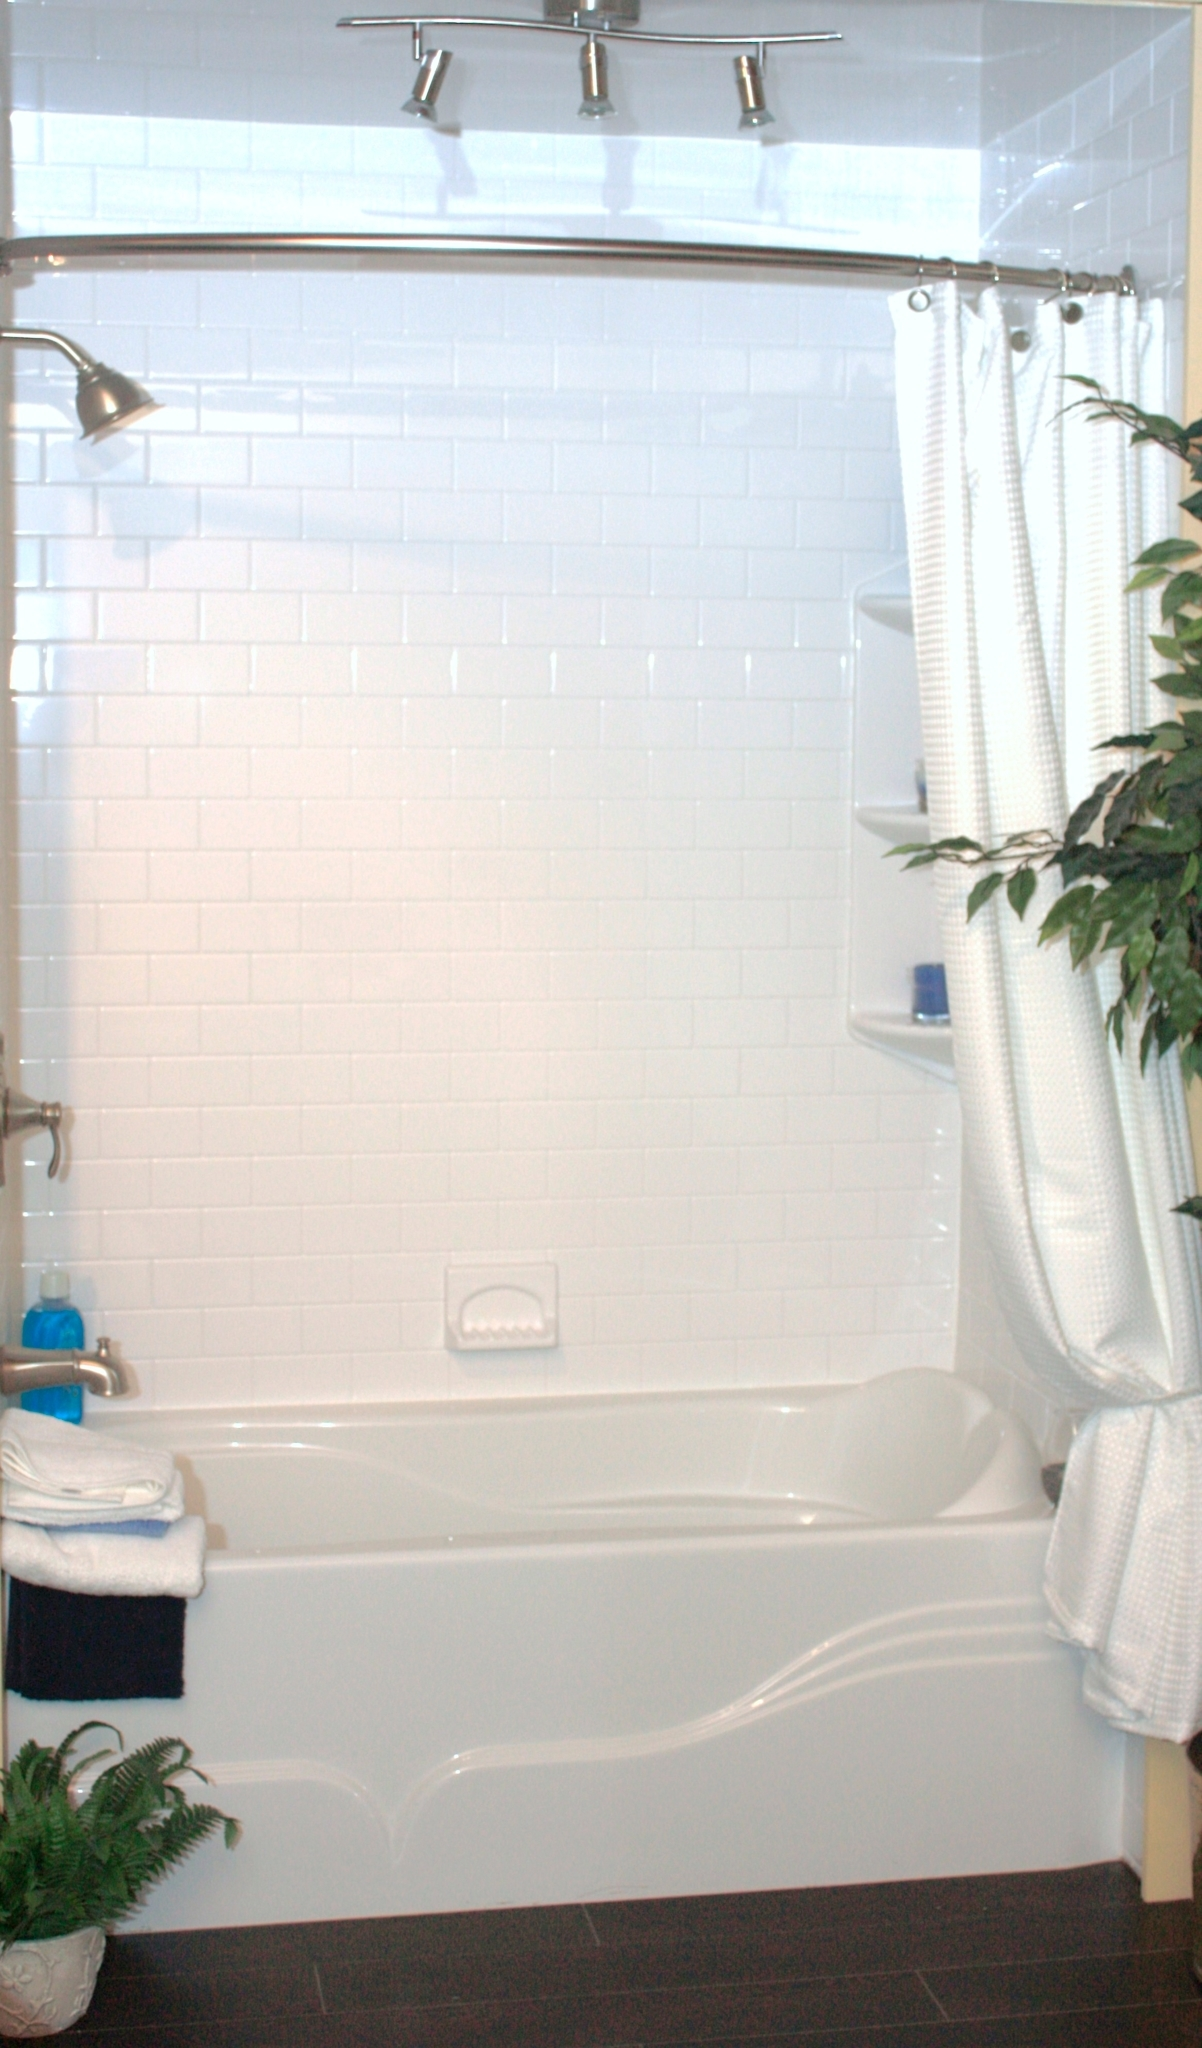 Ultimate Bath Systems Inc London (519)685-2284